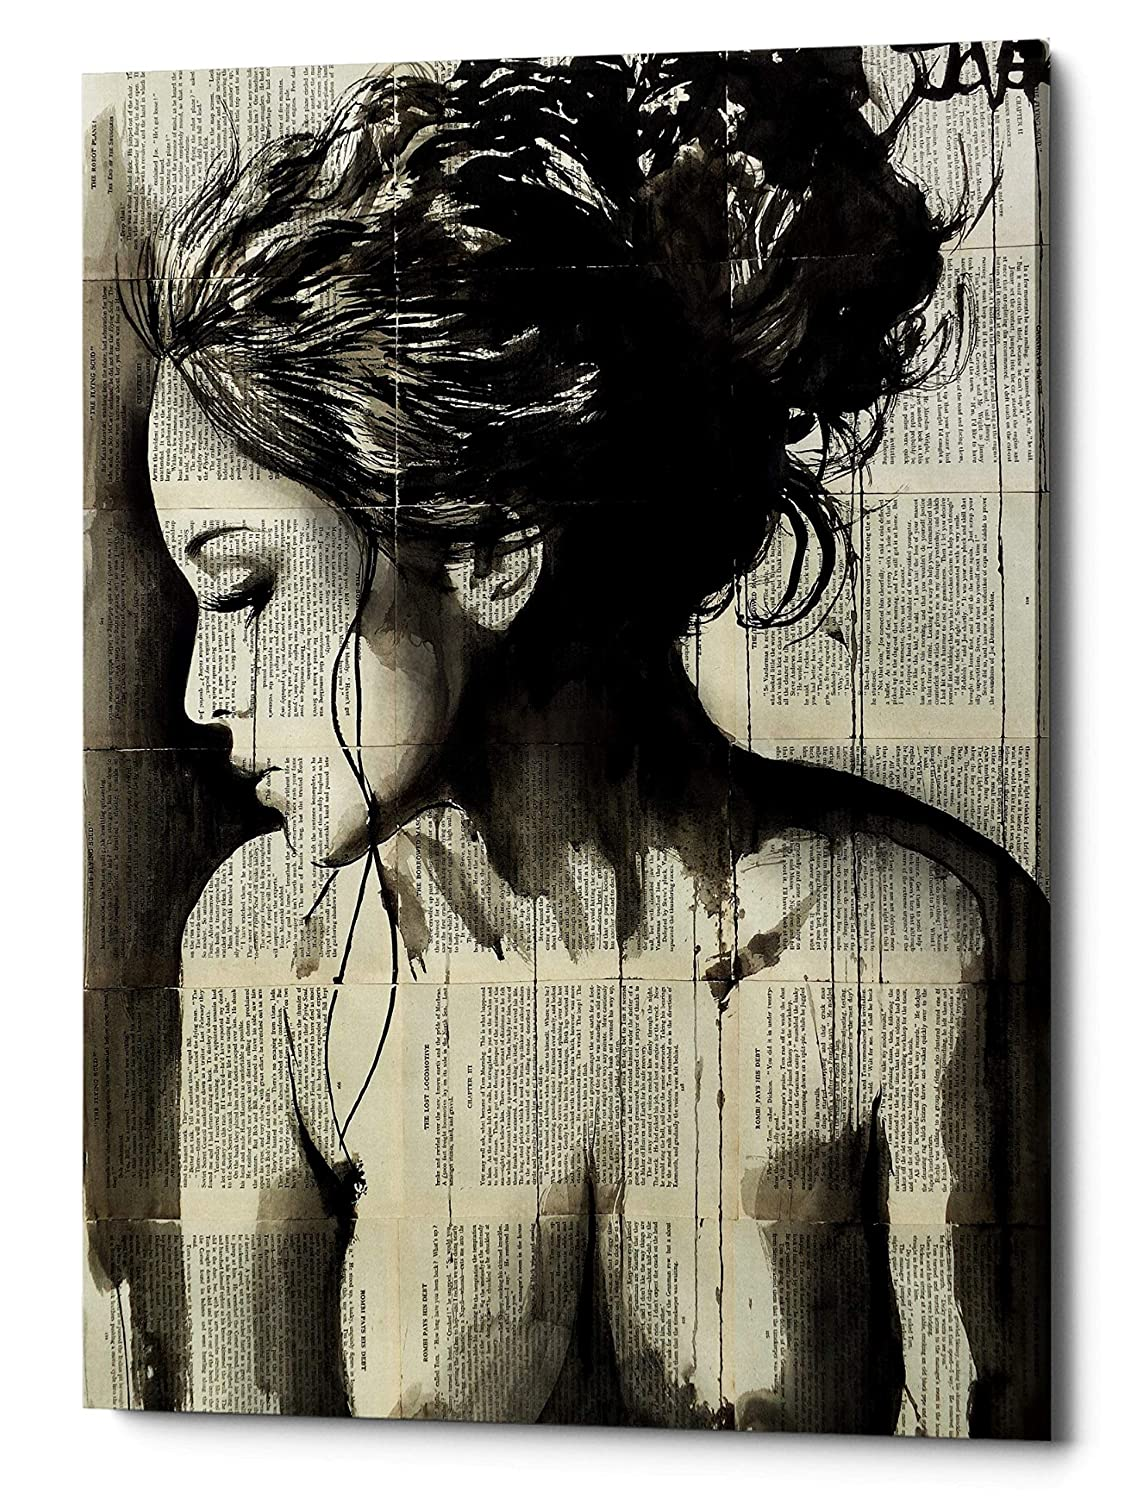 Epic Graffiti Dreamer by Loui Jover Giclee Canvas Wall Art, 18